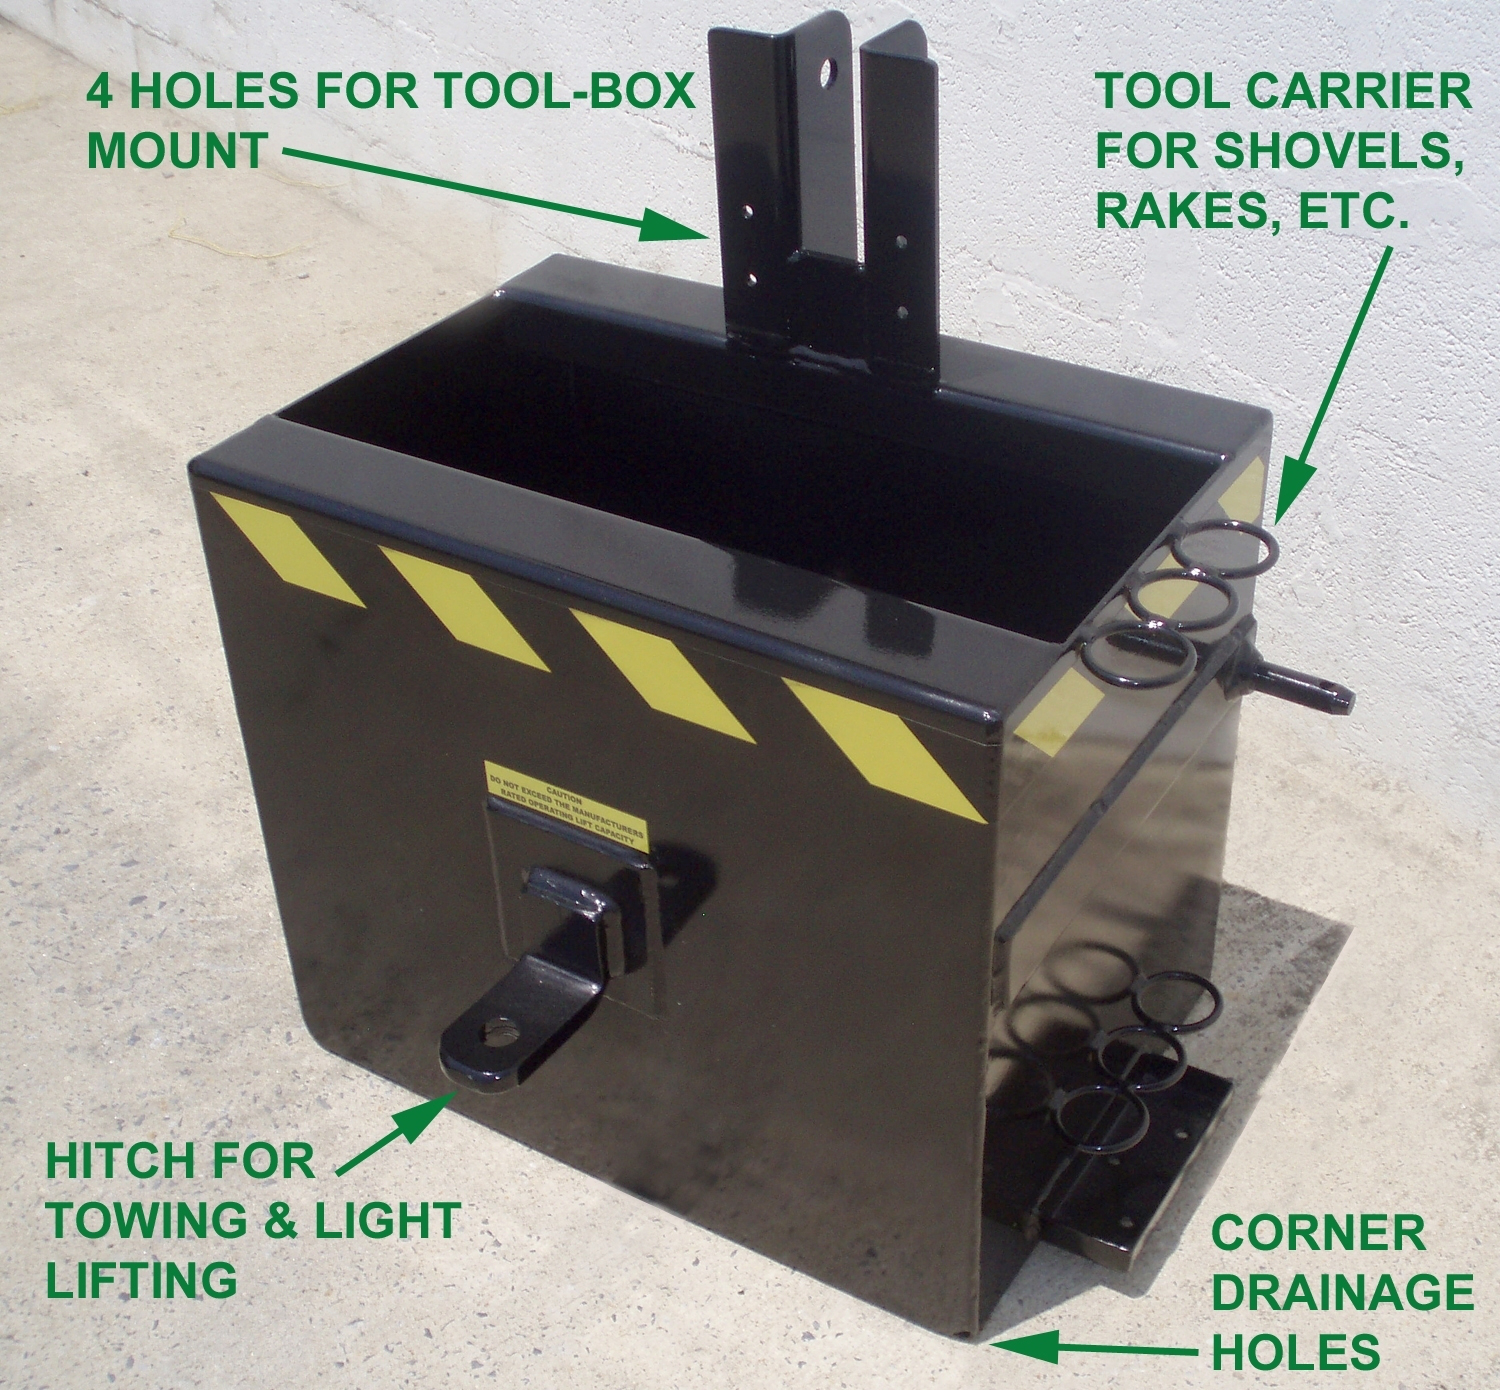 3 Point Ballast Box : Earth turf products intros ballast box for compact tractors